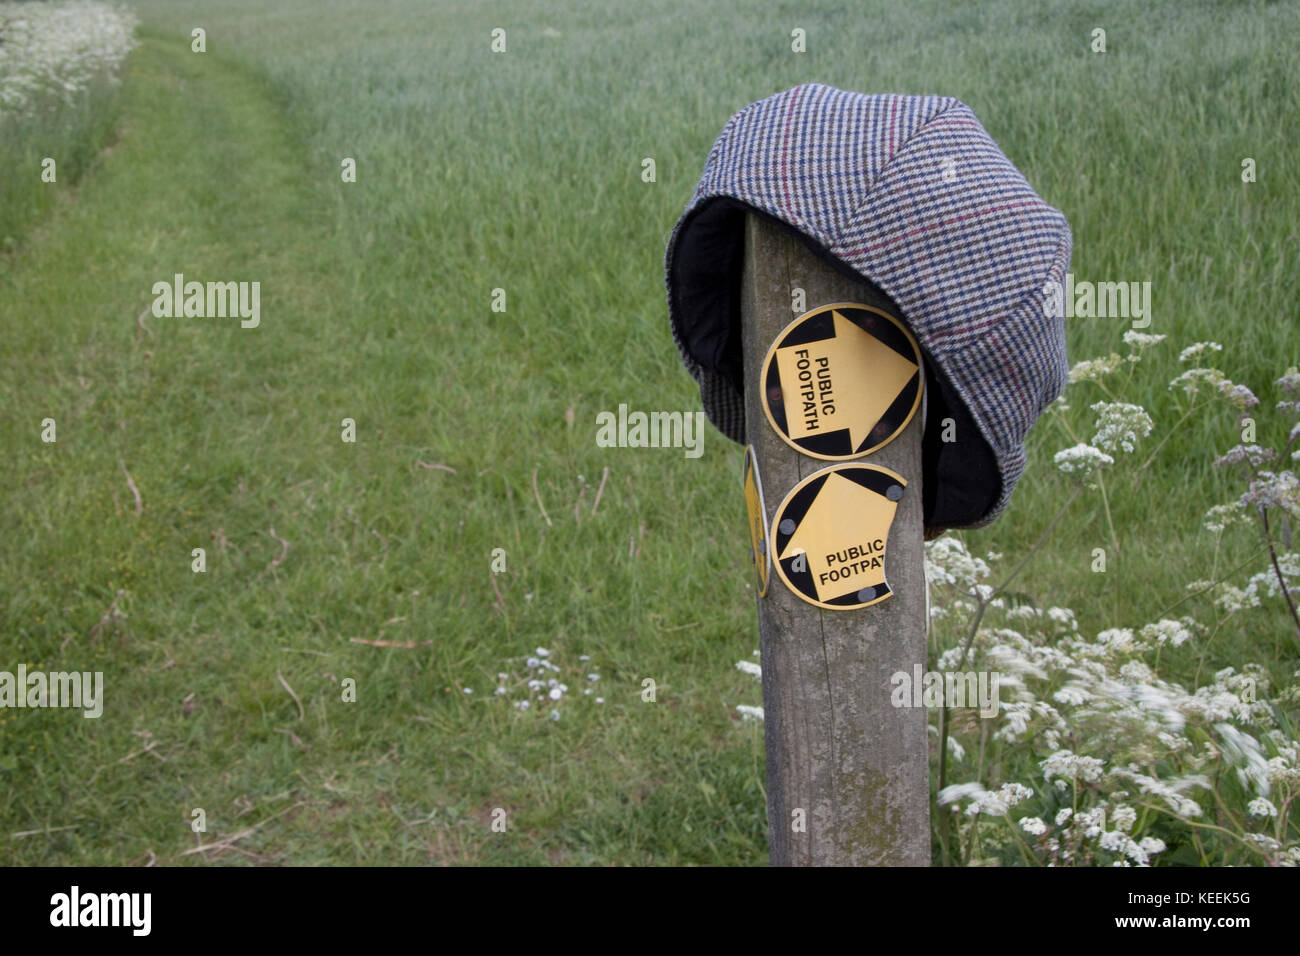 A lost flat cap on a post indicating footpaths - Stock Image